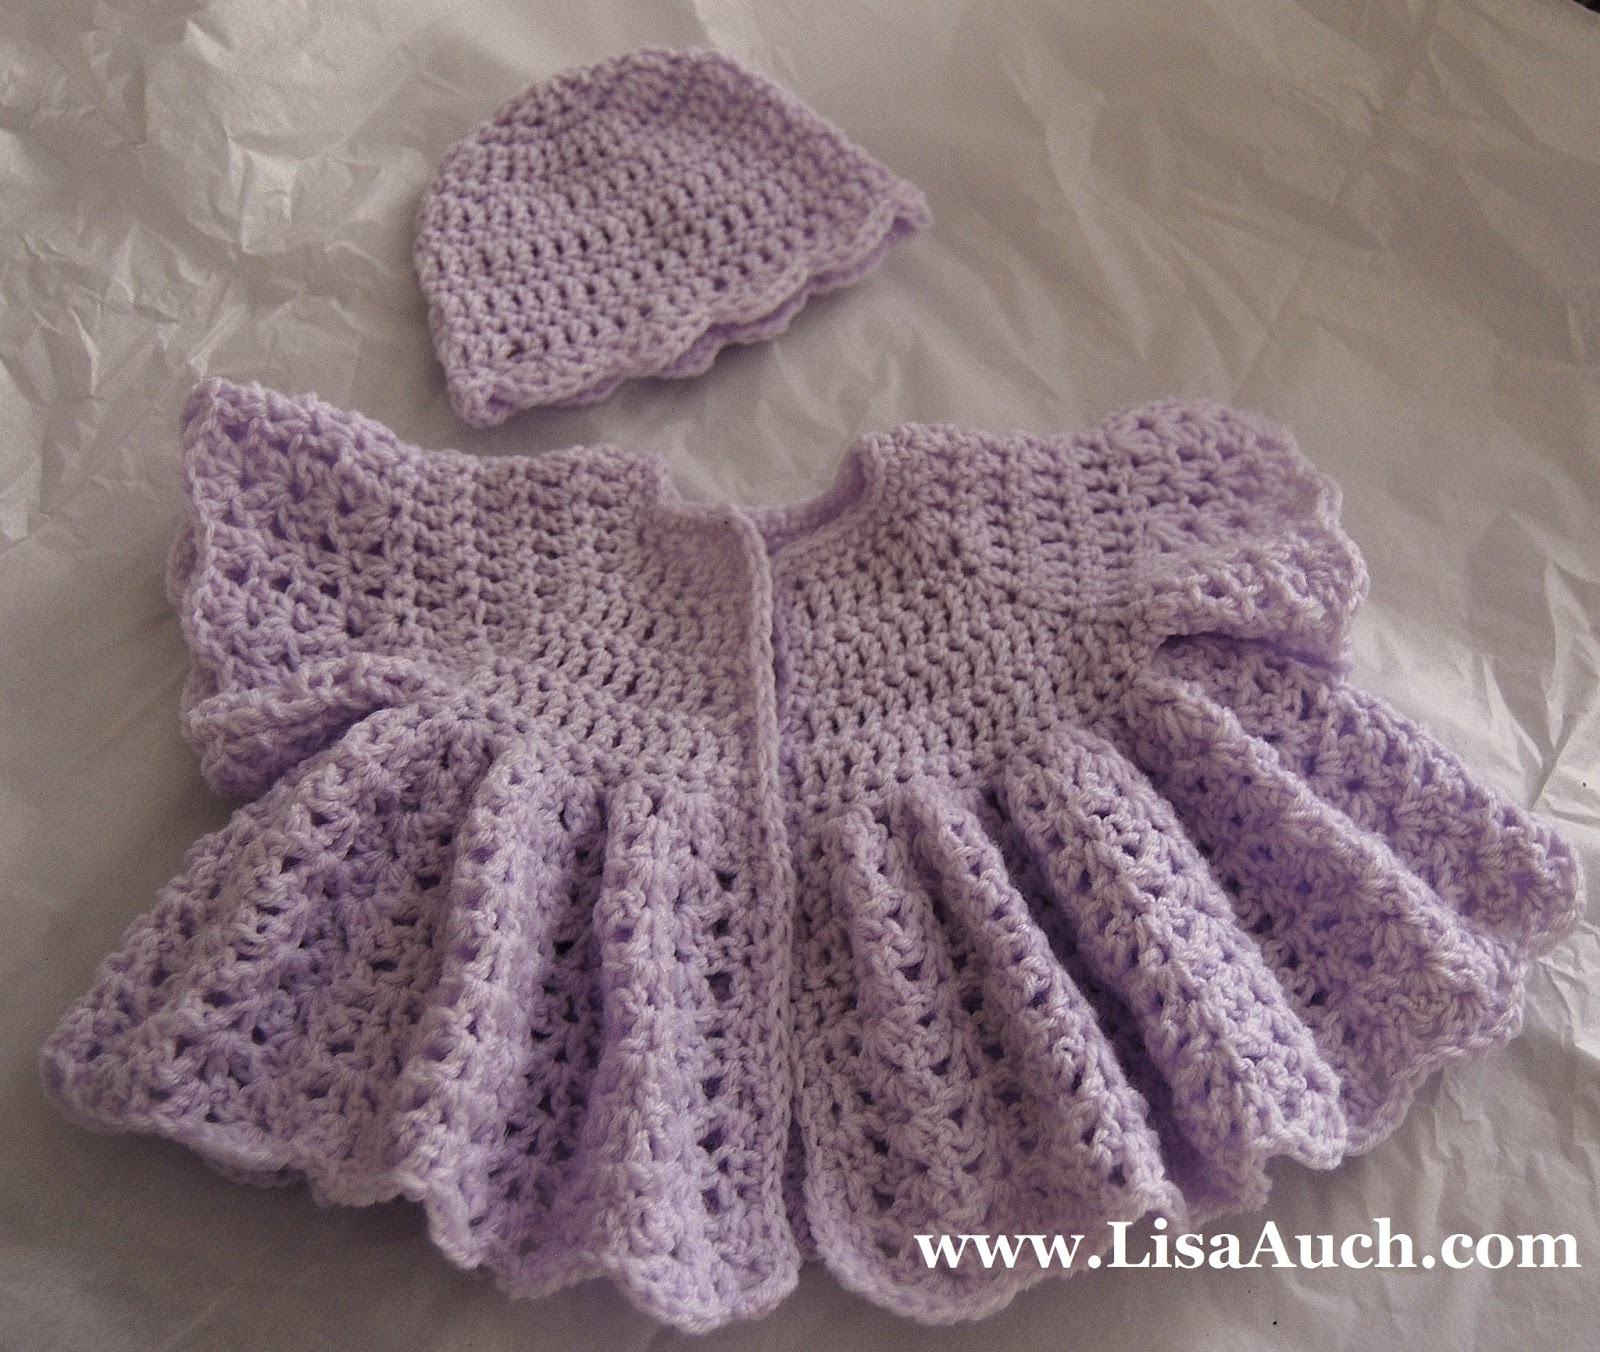 Easy Crochet Baby Sweater Pattern Free : Crochet Baby Cardigan Pattern Free Crochet Patterns LONG ...